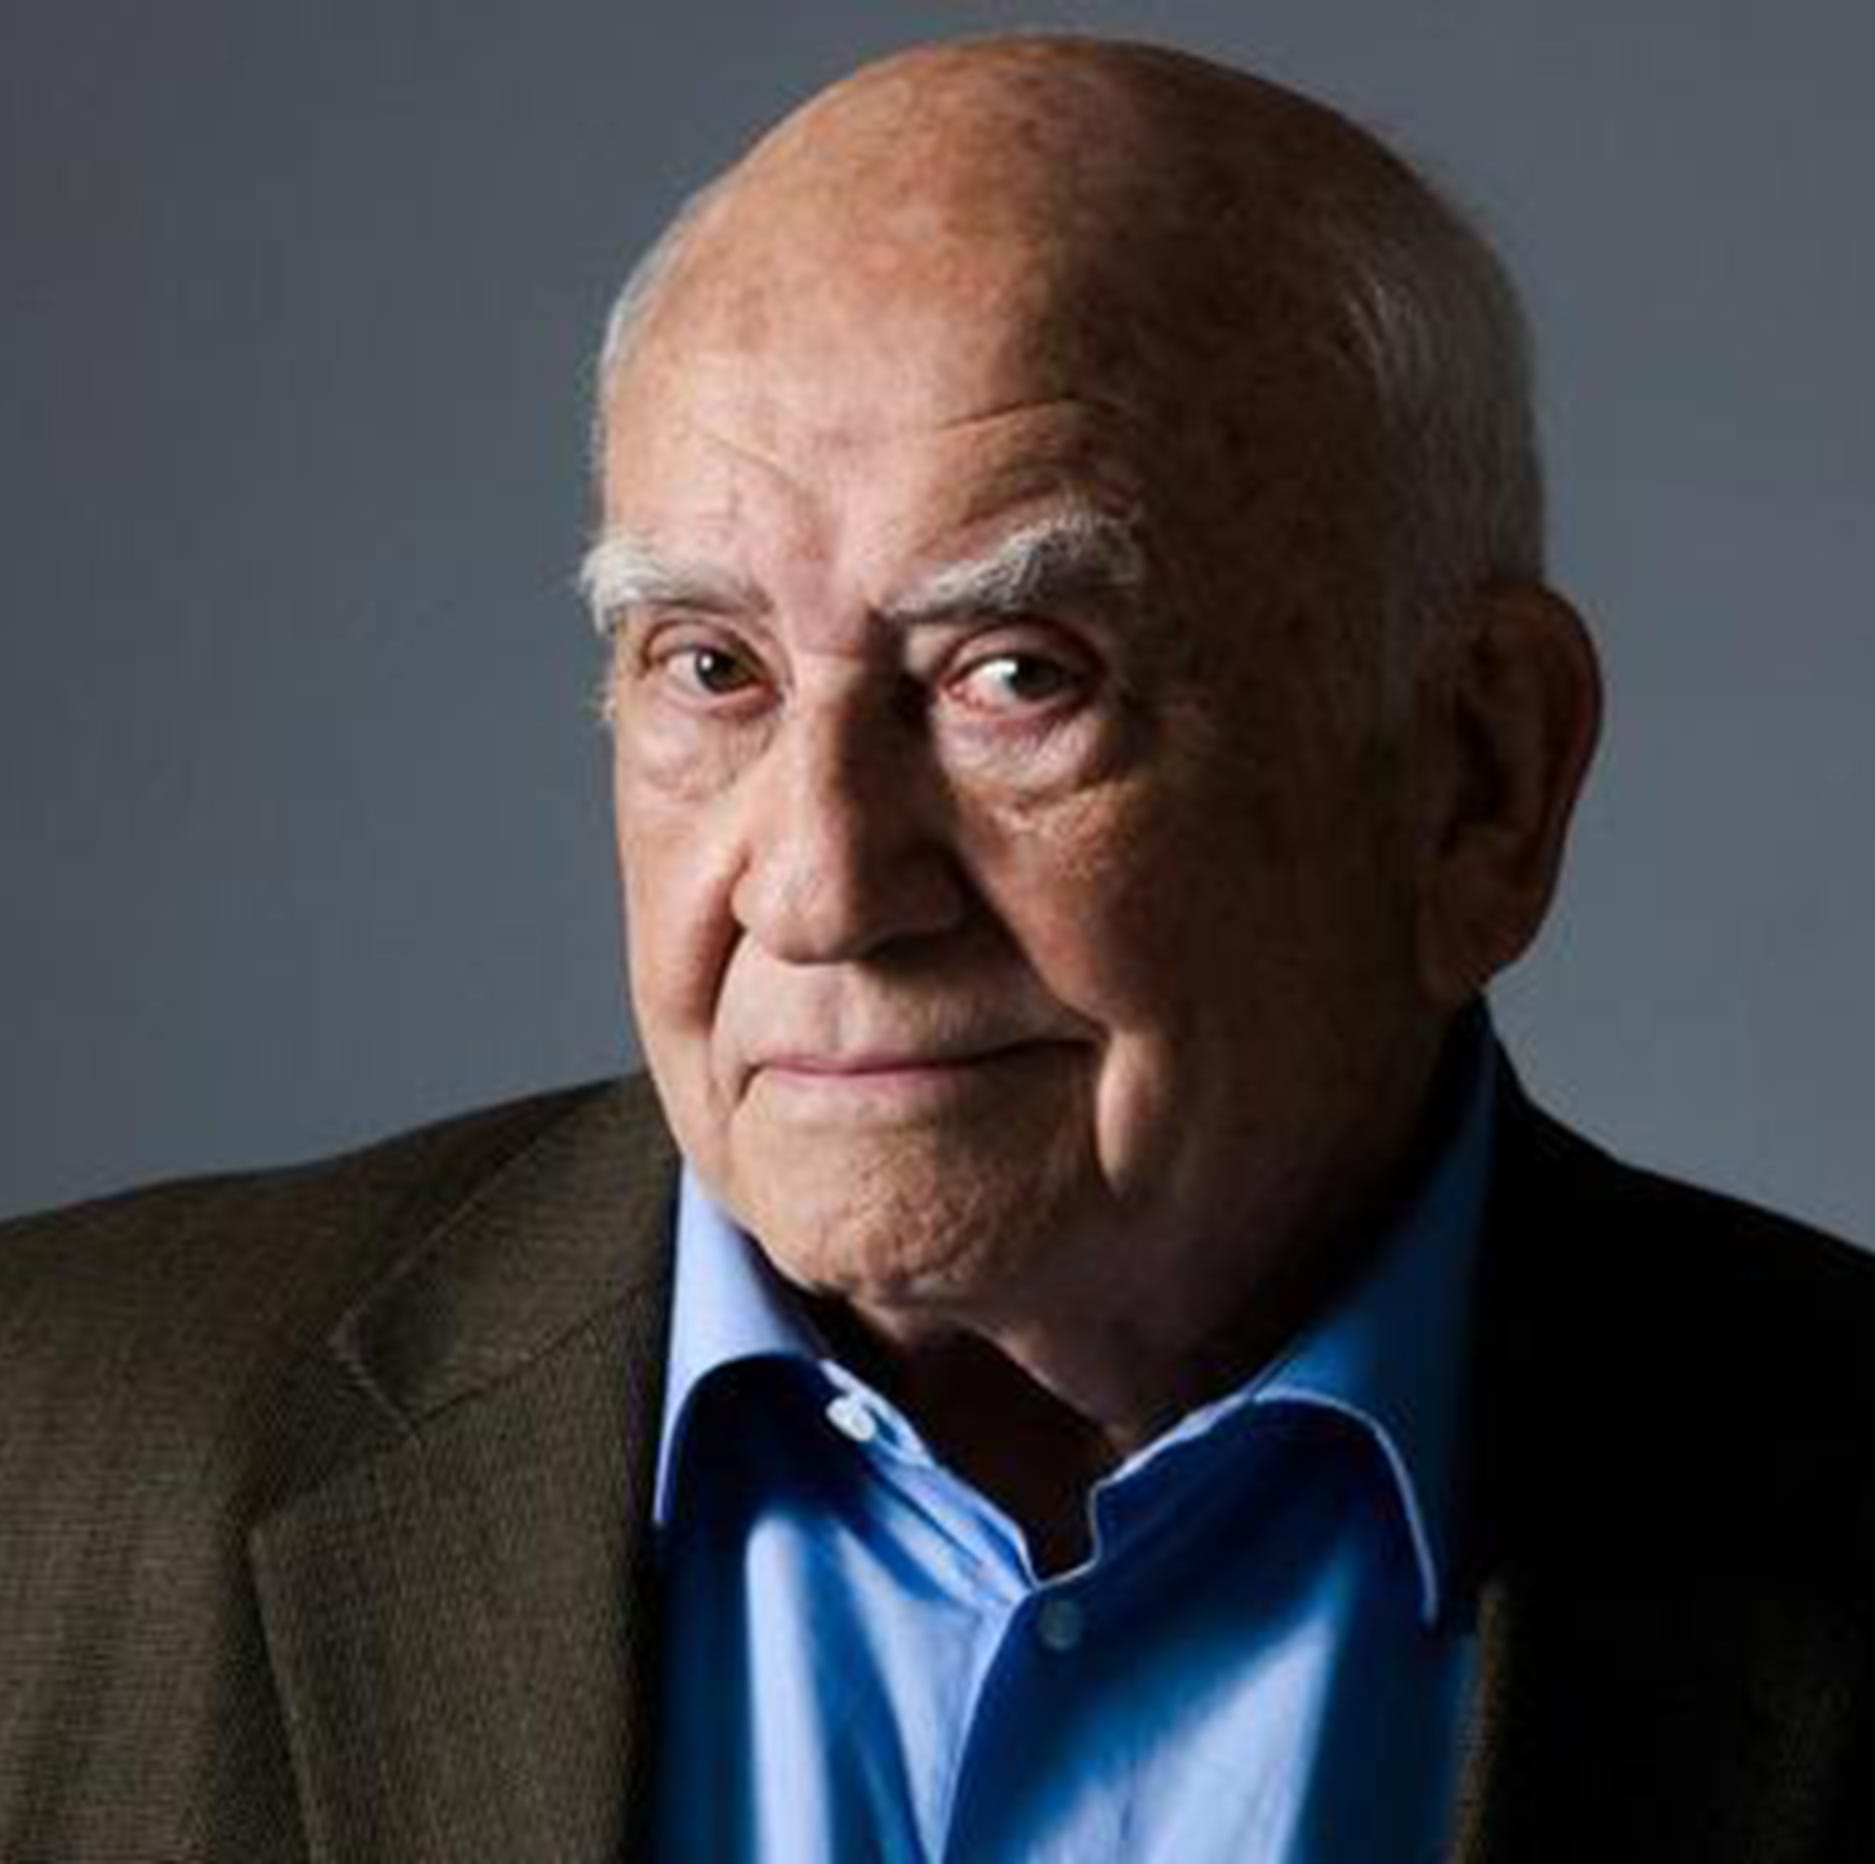 Ed Asner bringing one-man show to Millbrook